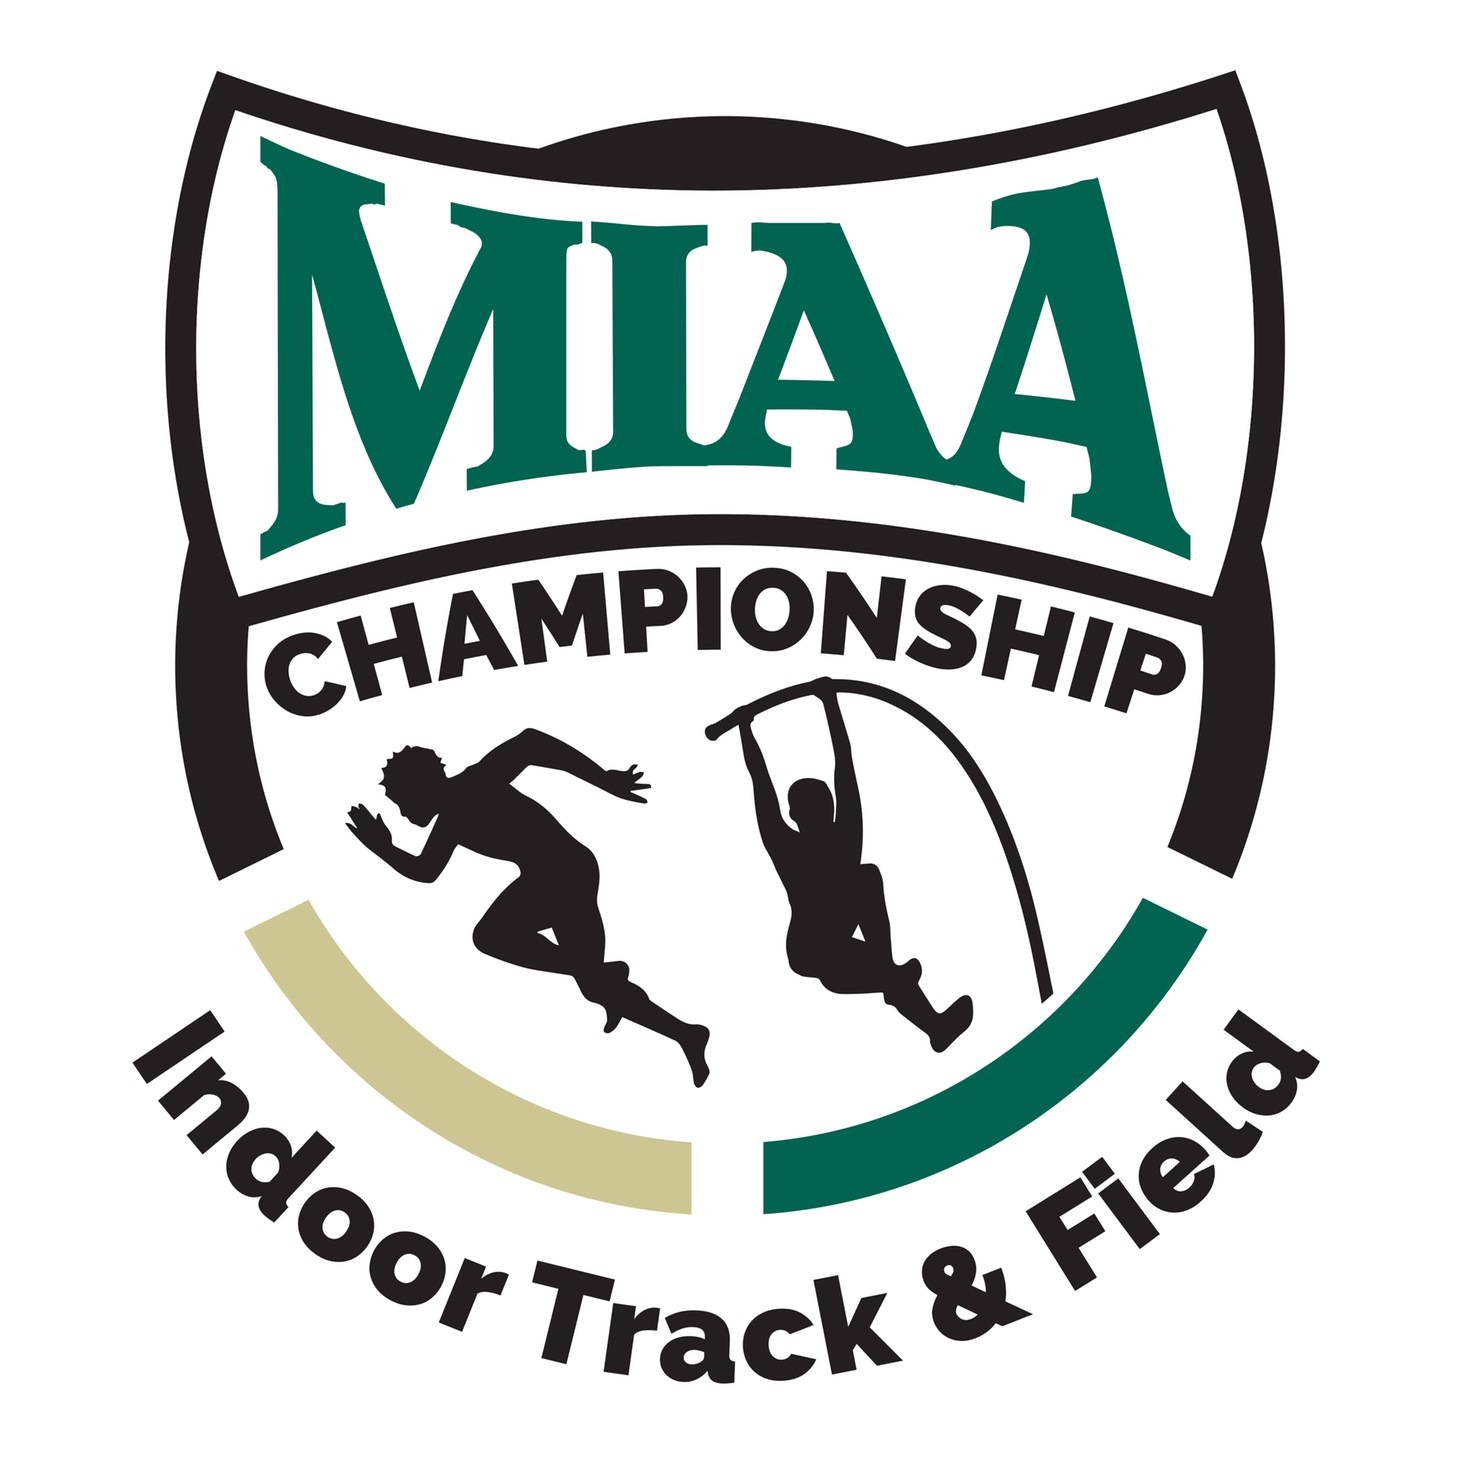 MIAA track and field championship green, black and golf logo